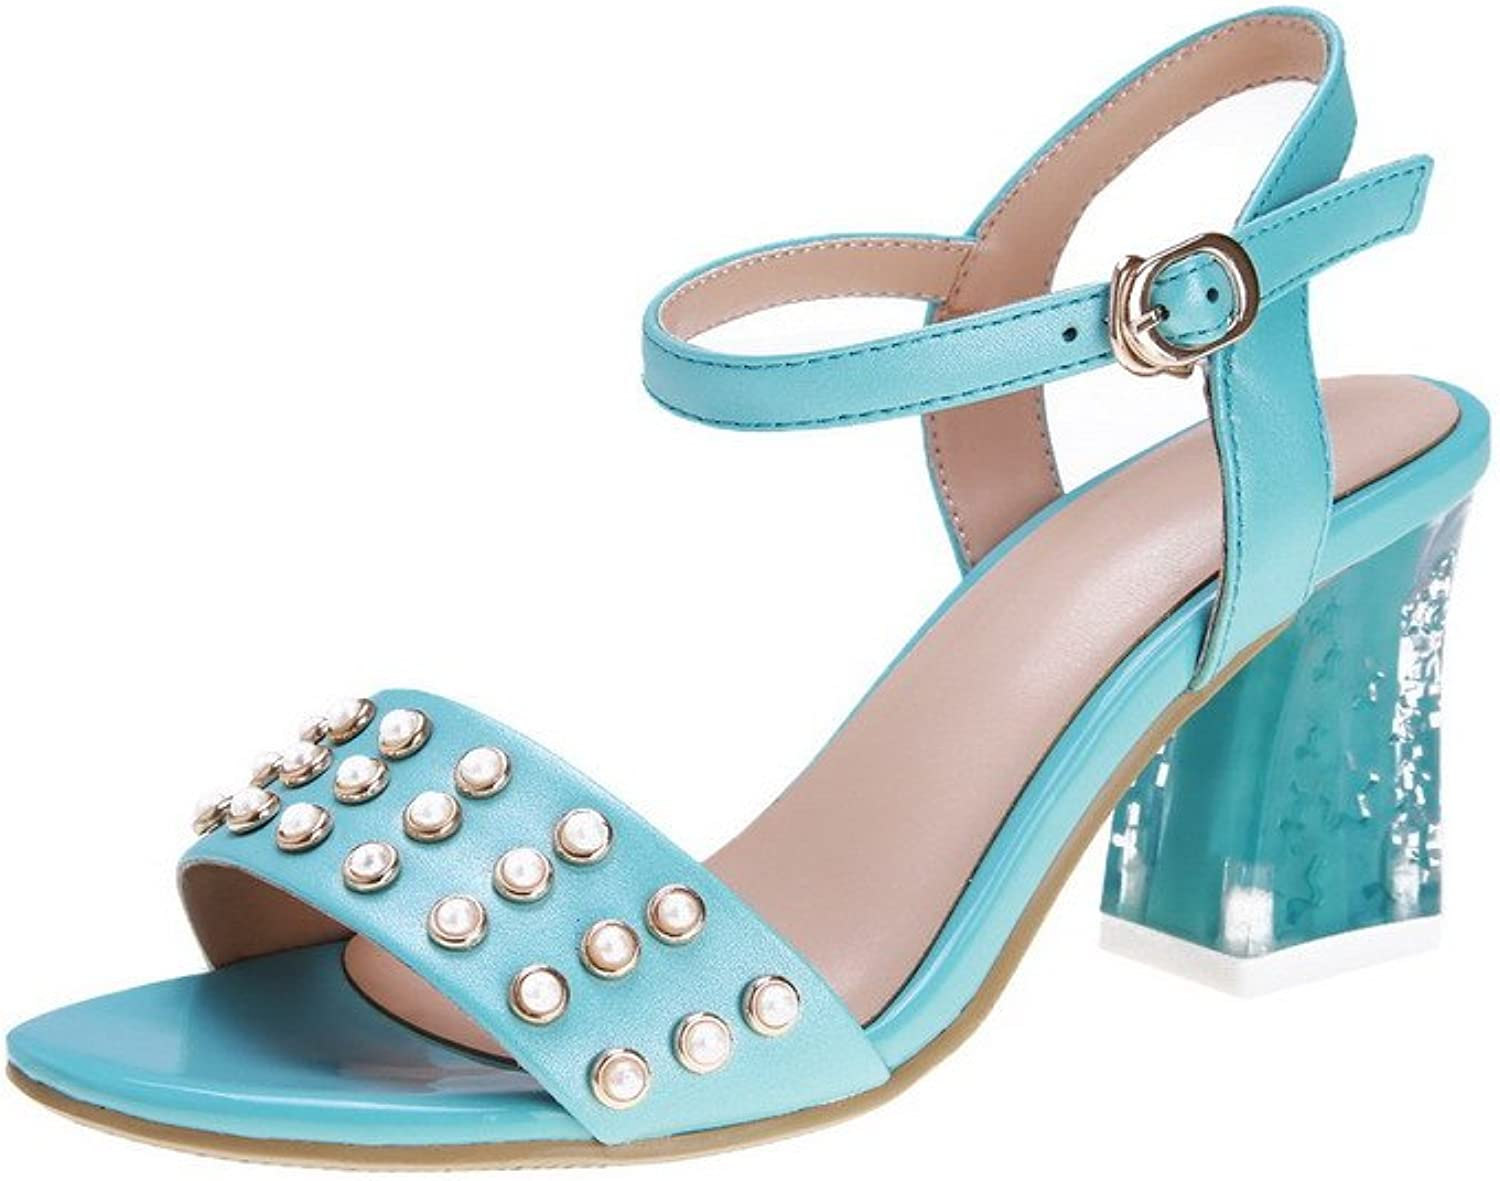 AmoonyFashion Women's Open Toe Buckle Cow Leather Solid High-Heels Sandals with Jewels